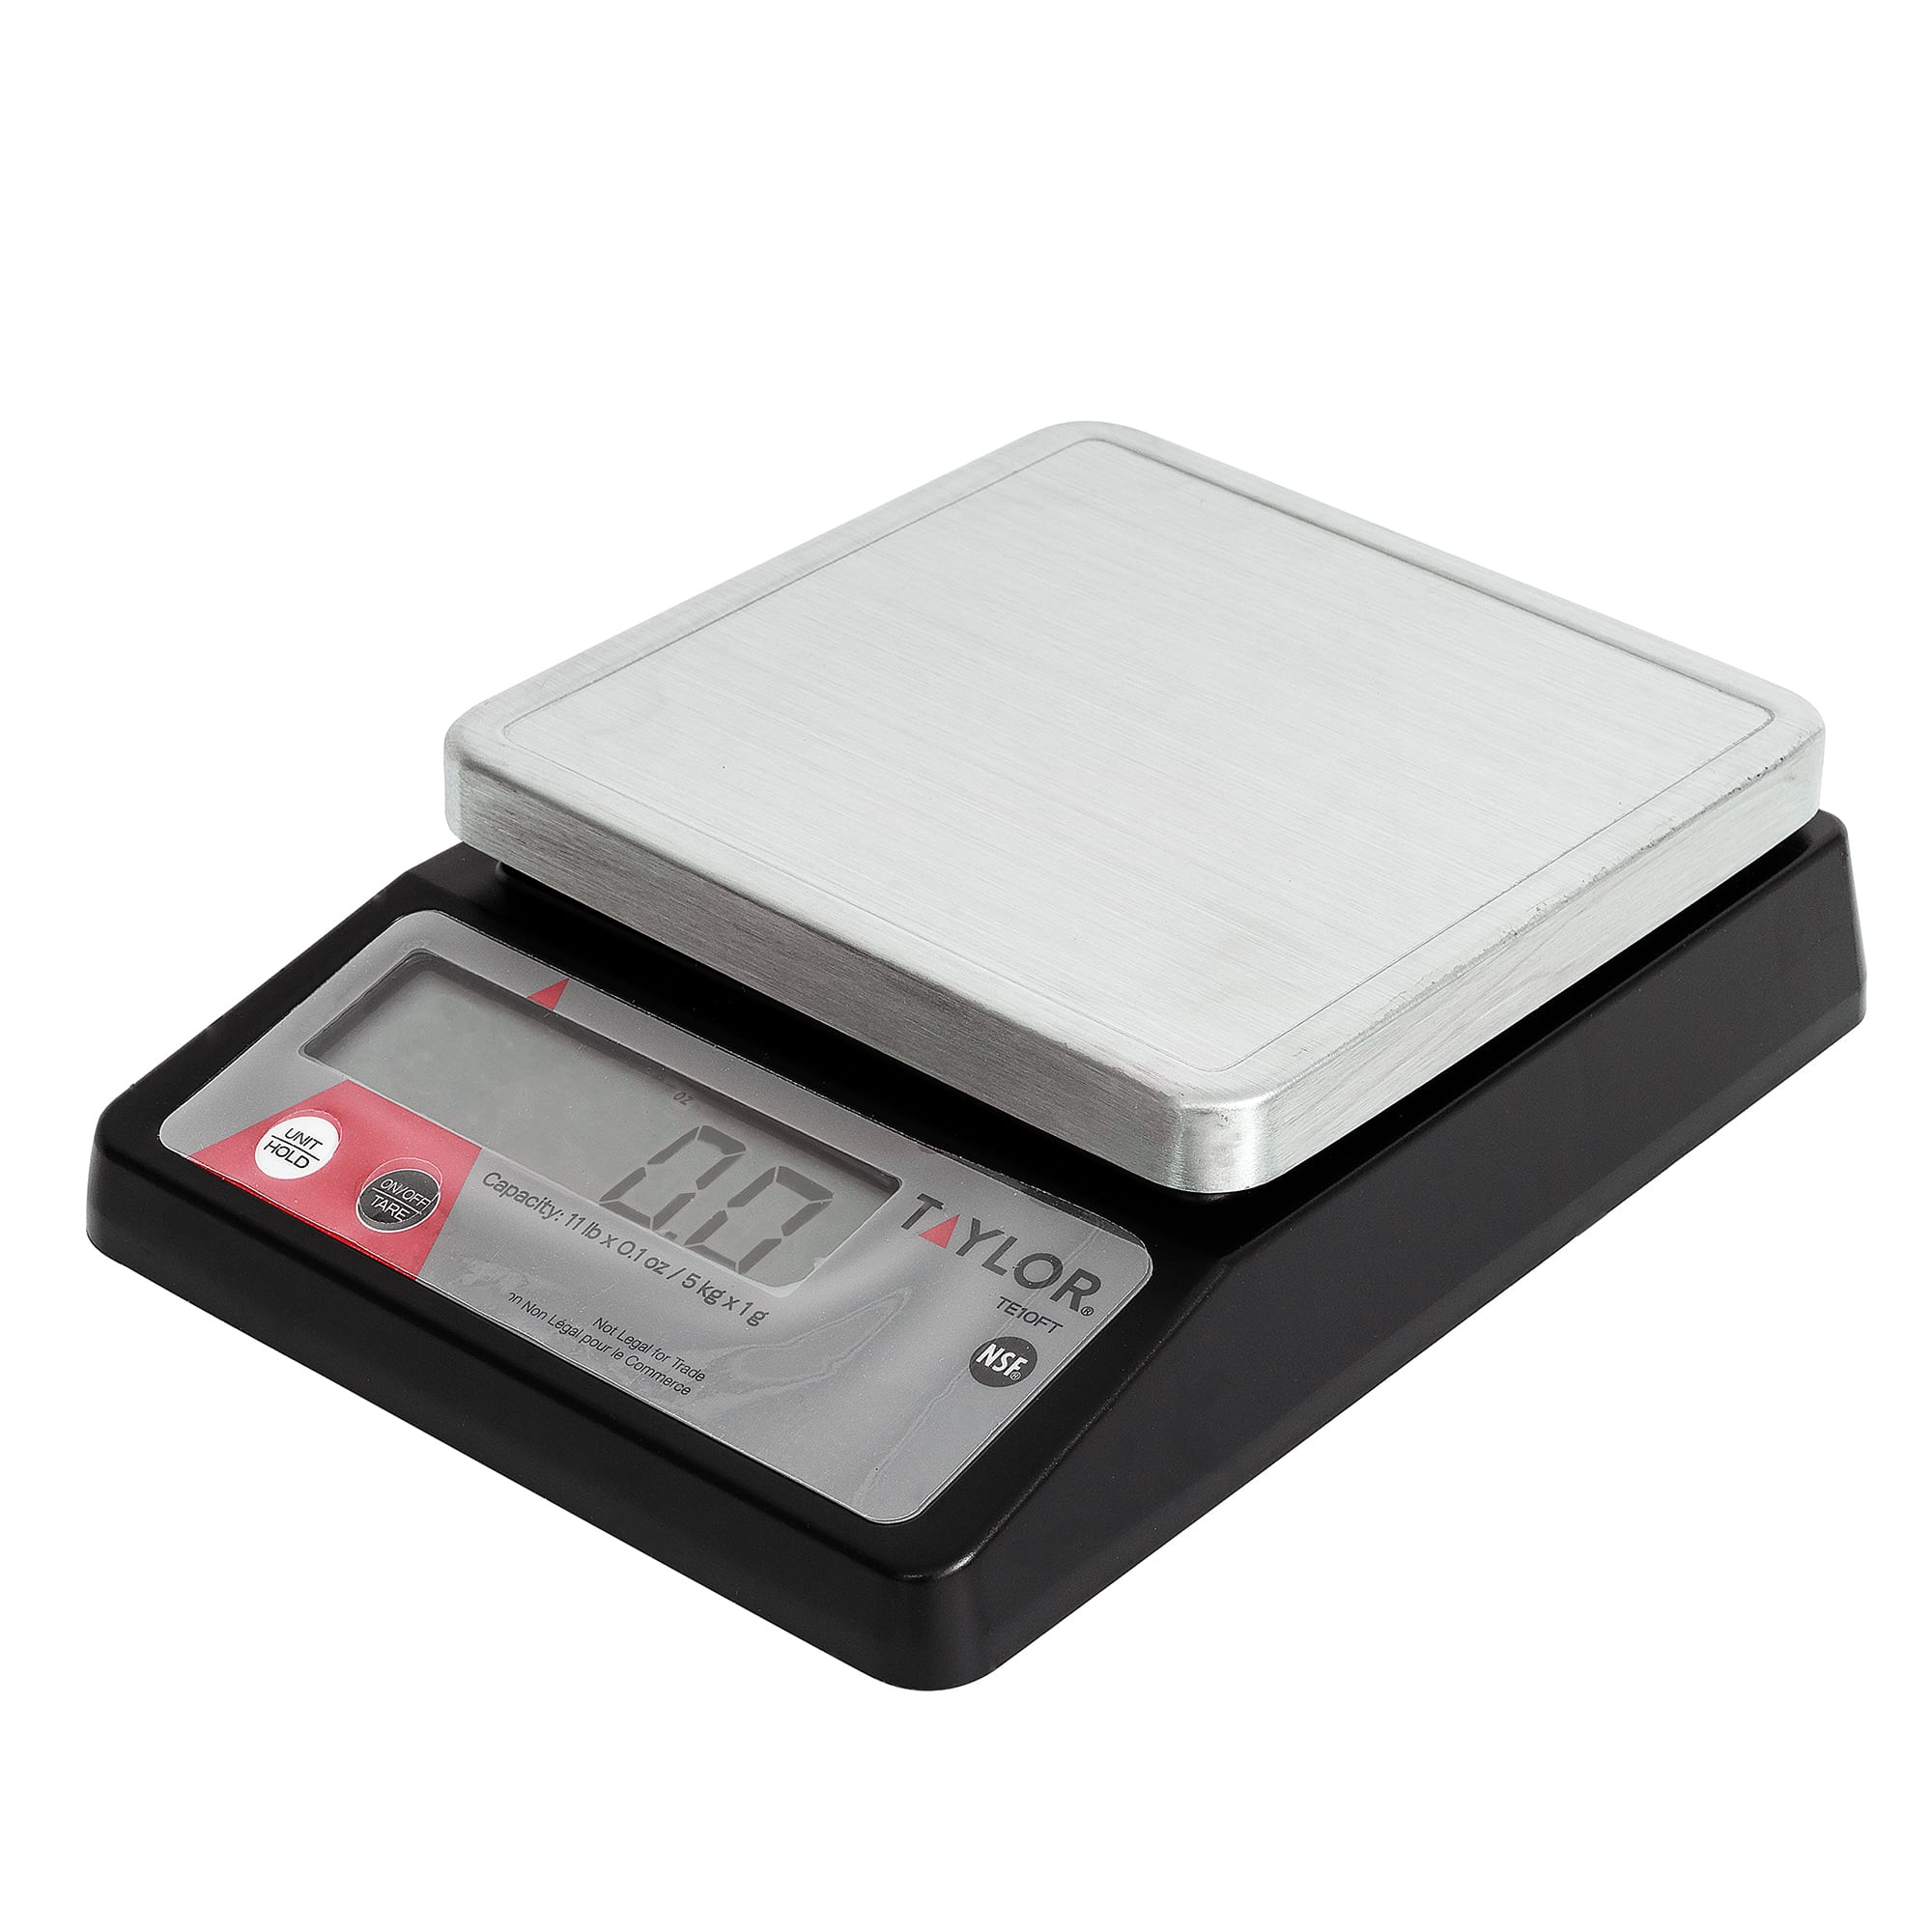 Taylor TE10FT Digital Scale, 10 lb x 1/10 oz Graduation